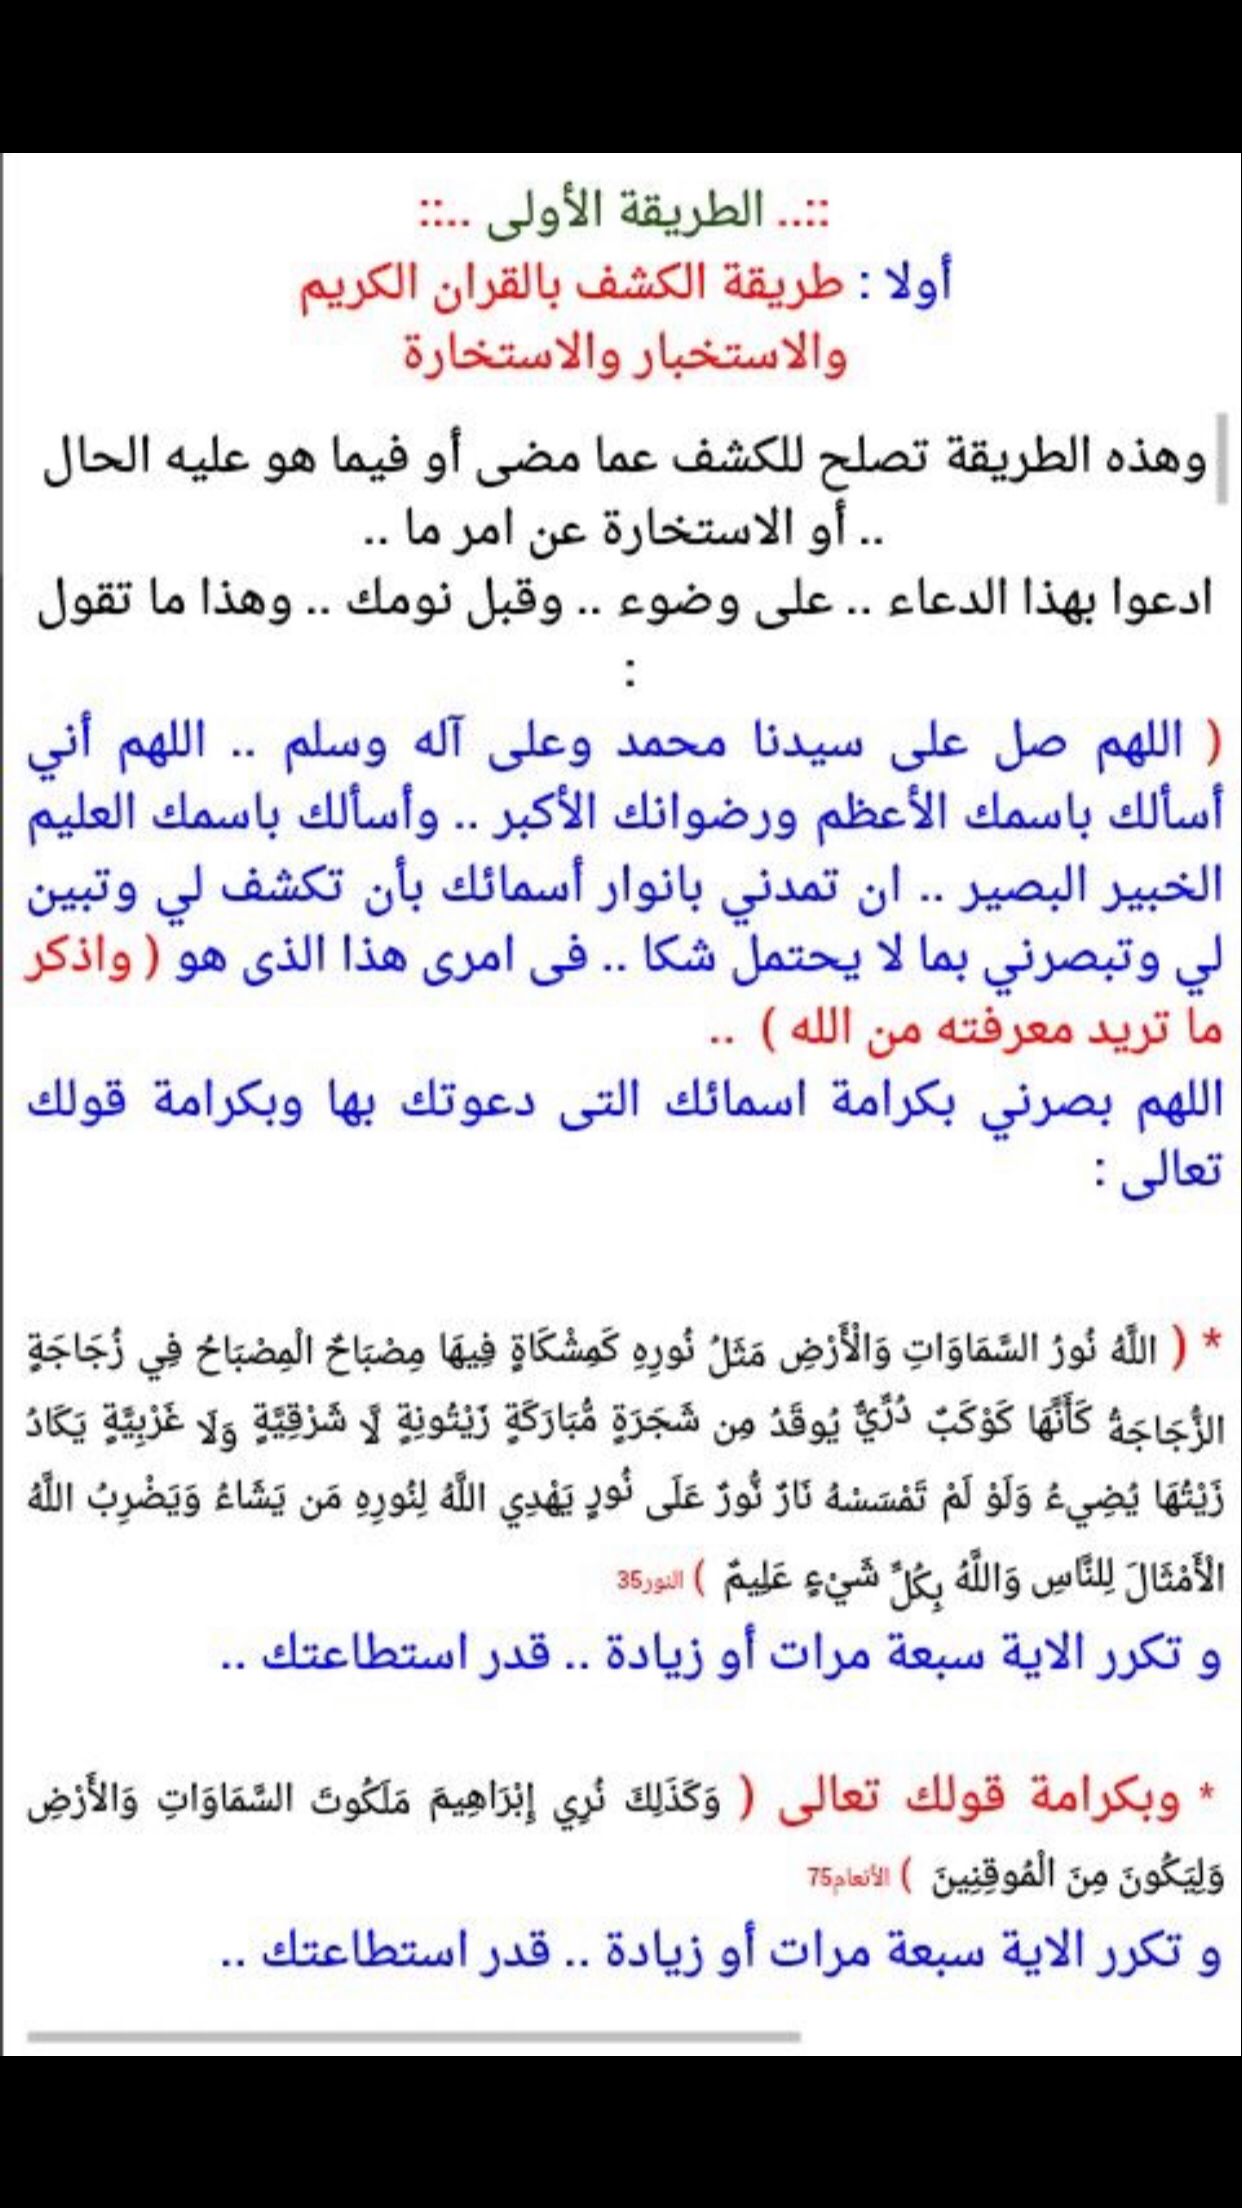 Pin By Boubker On اذكارات Islam Facts Quran Quotes Love Islam Beliefs